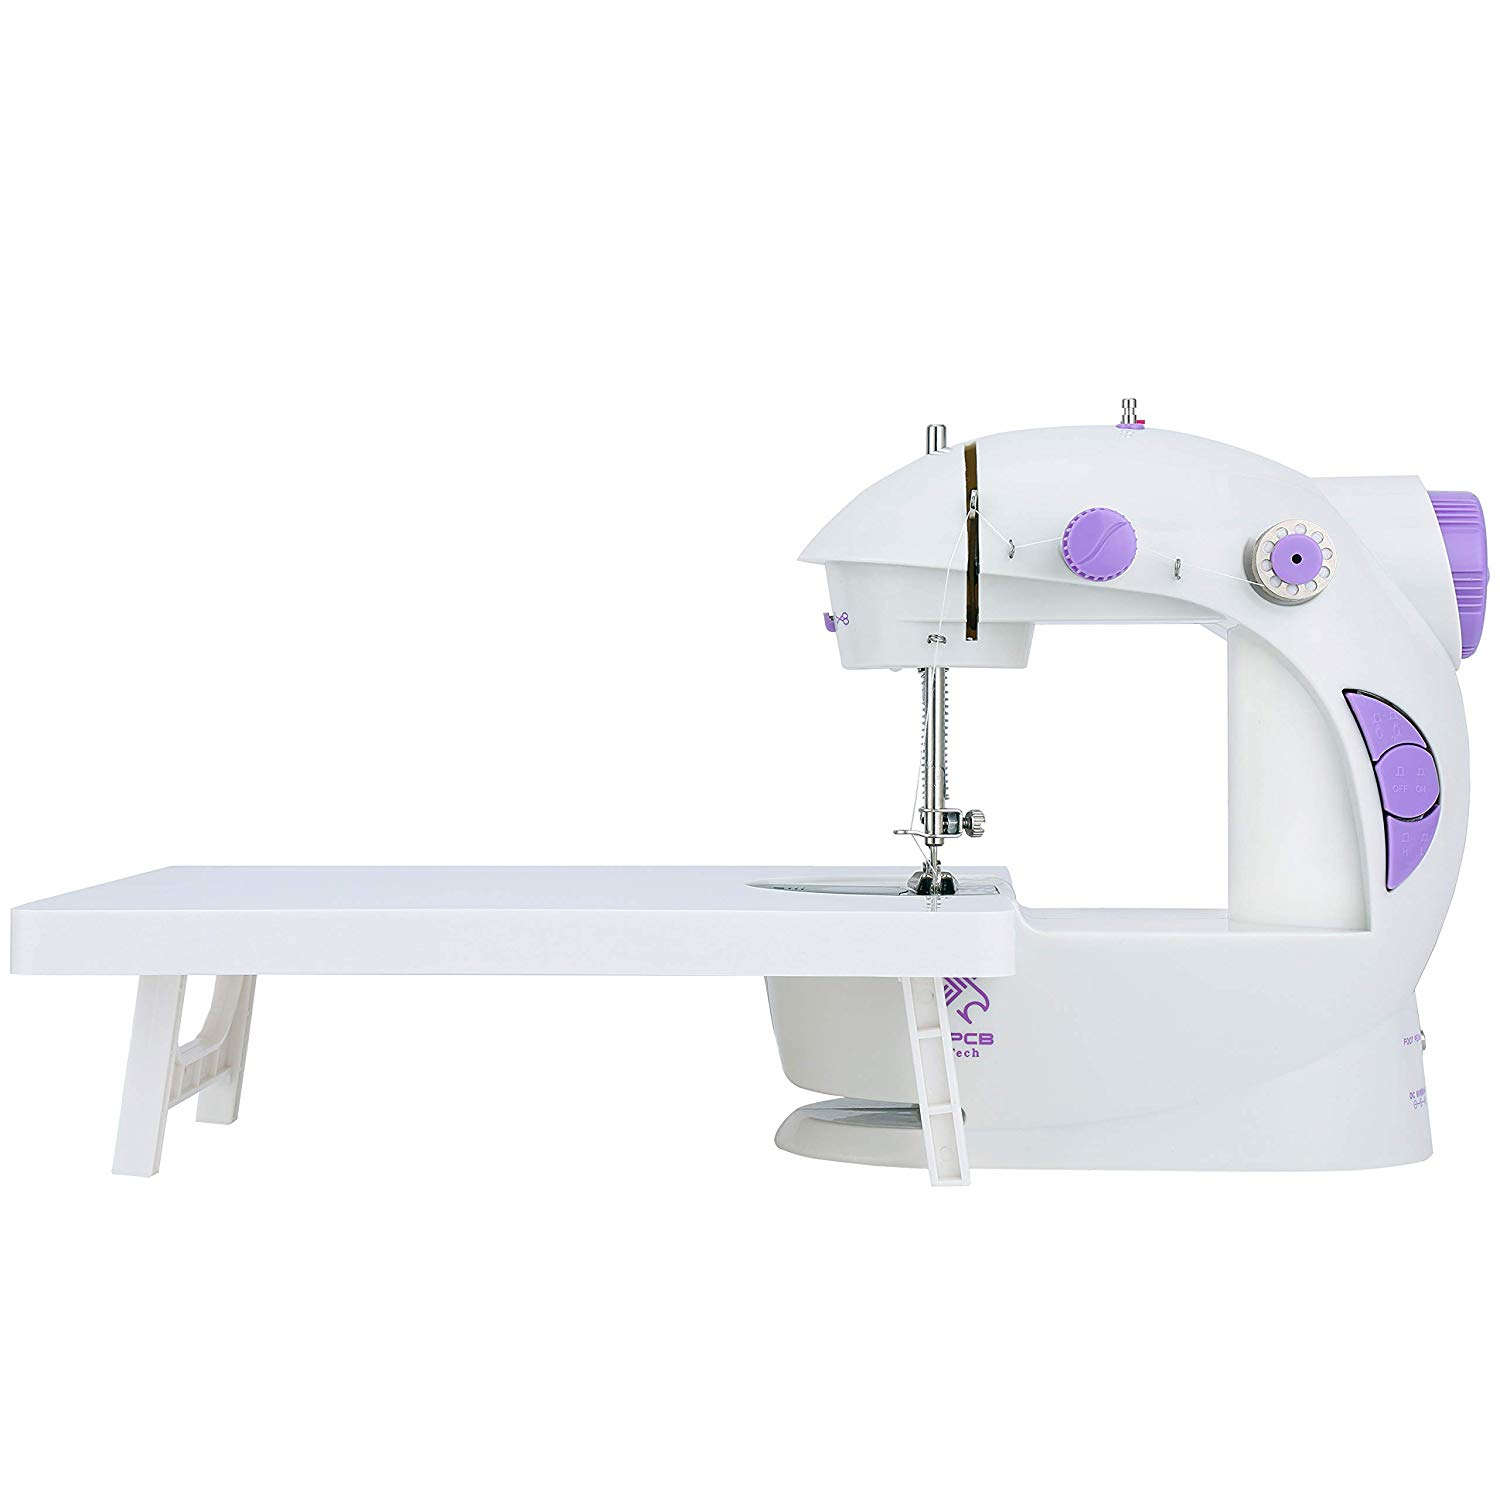 Mini sewing machine with table